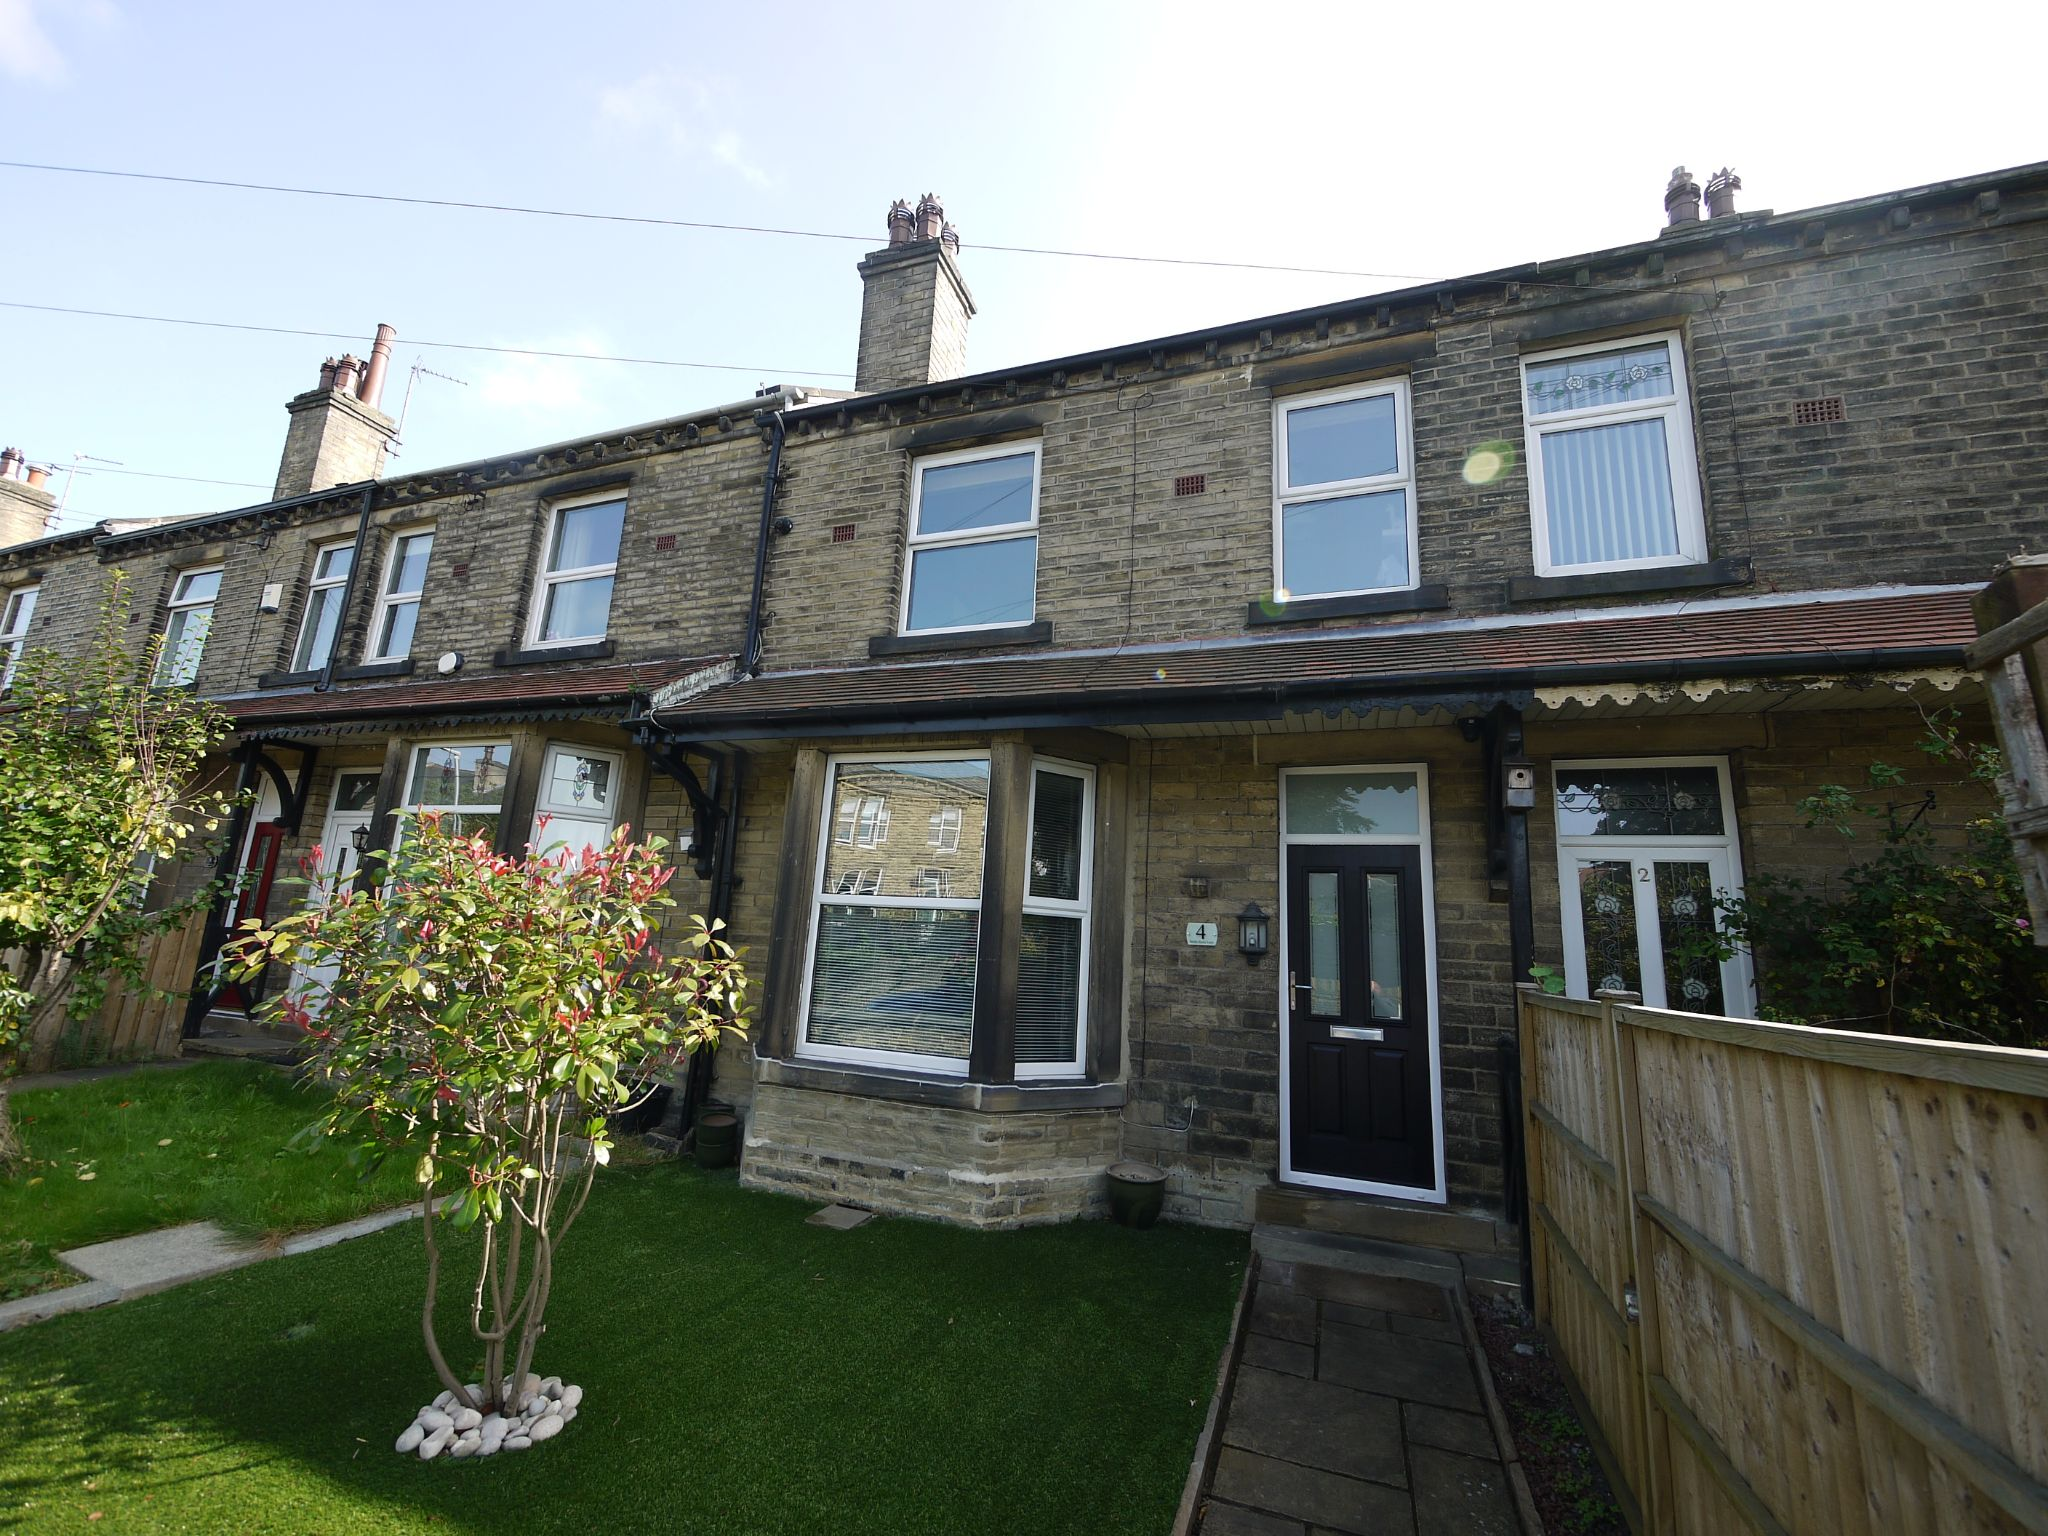 3 bedroom mid terraced house SSTC in Brighouse - Main.